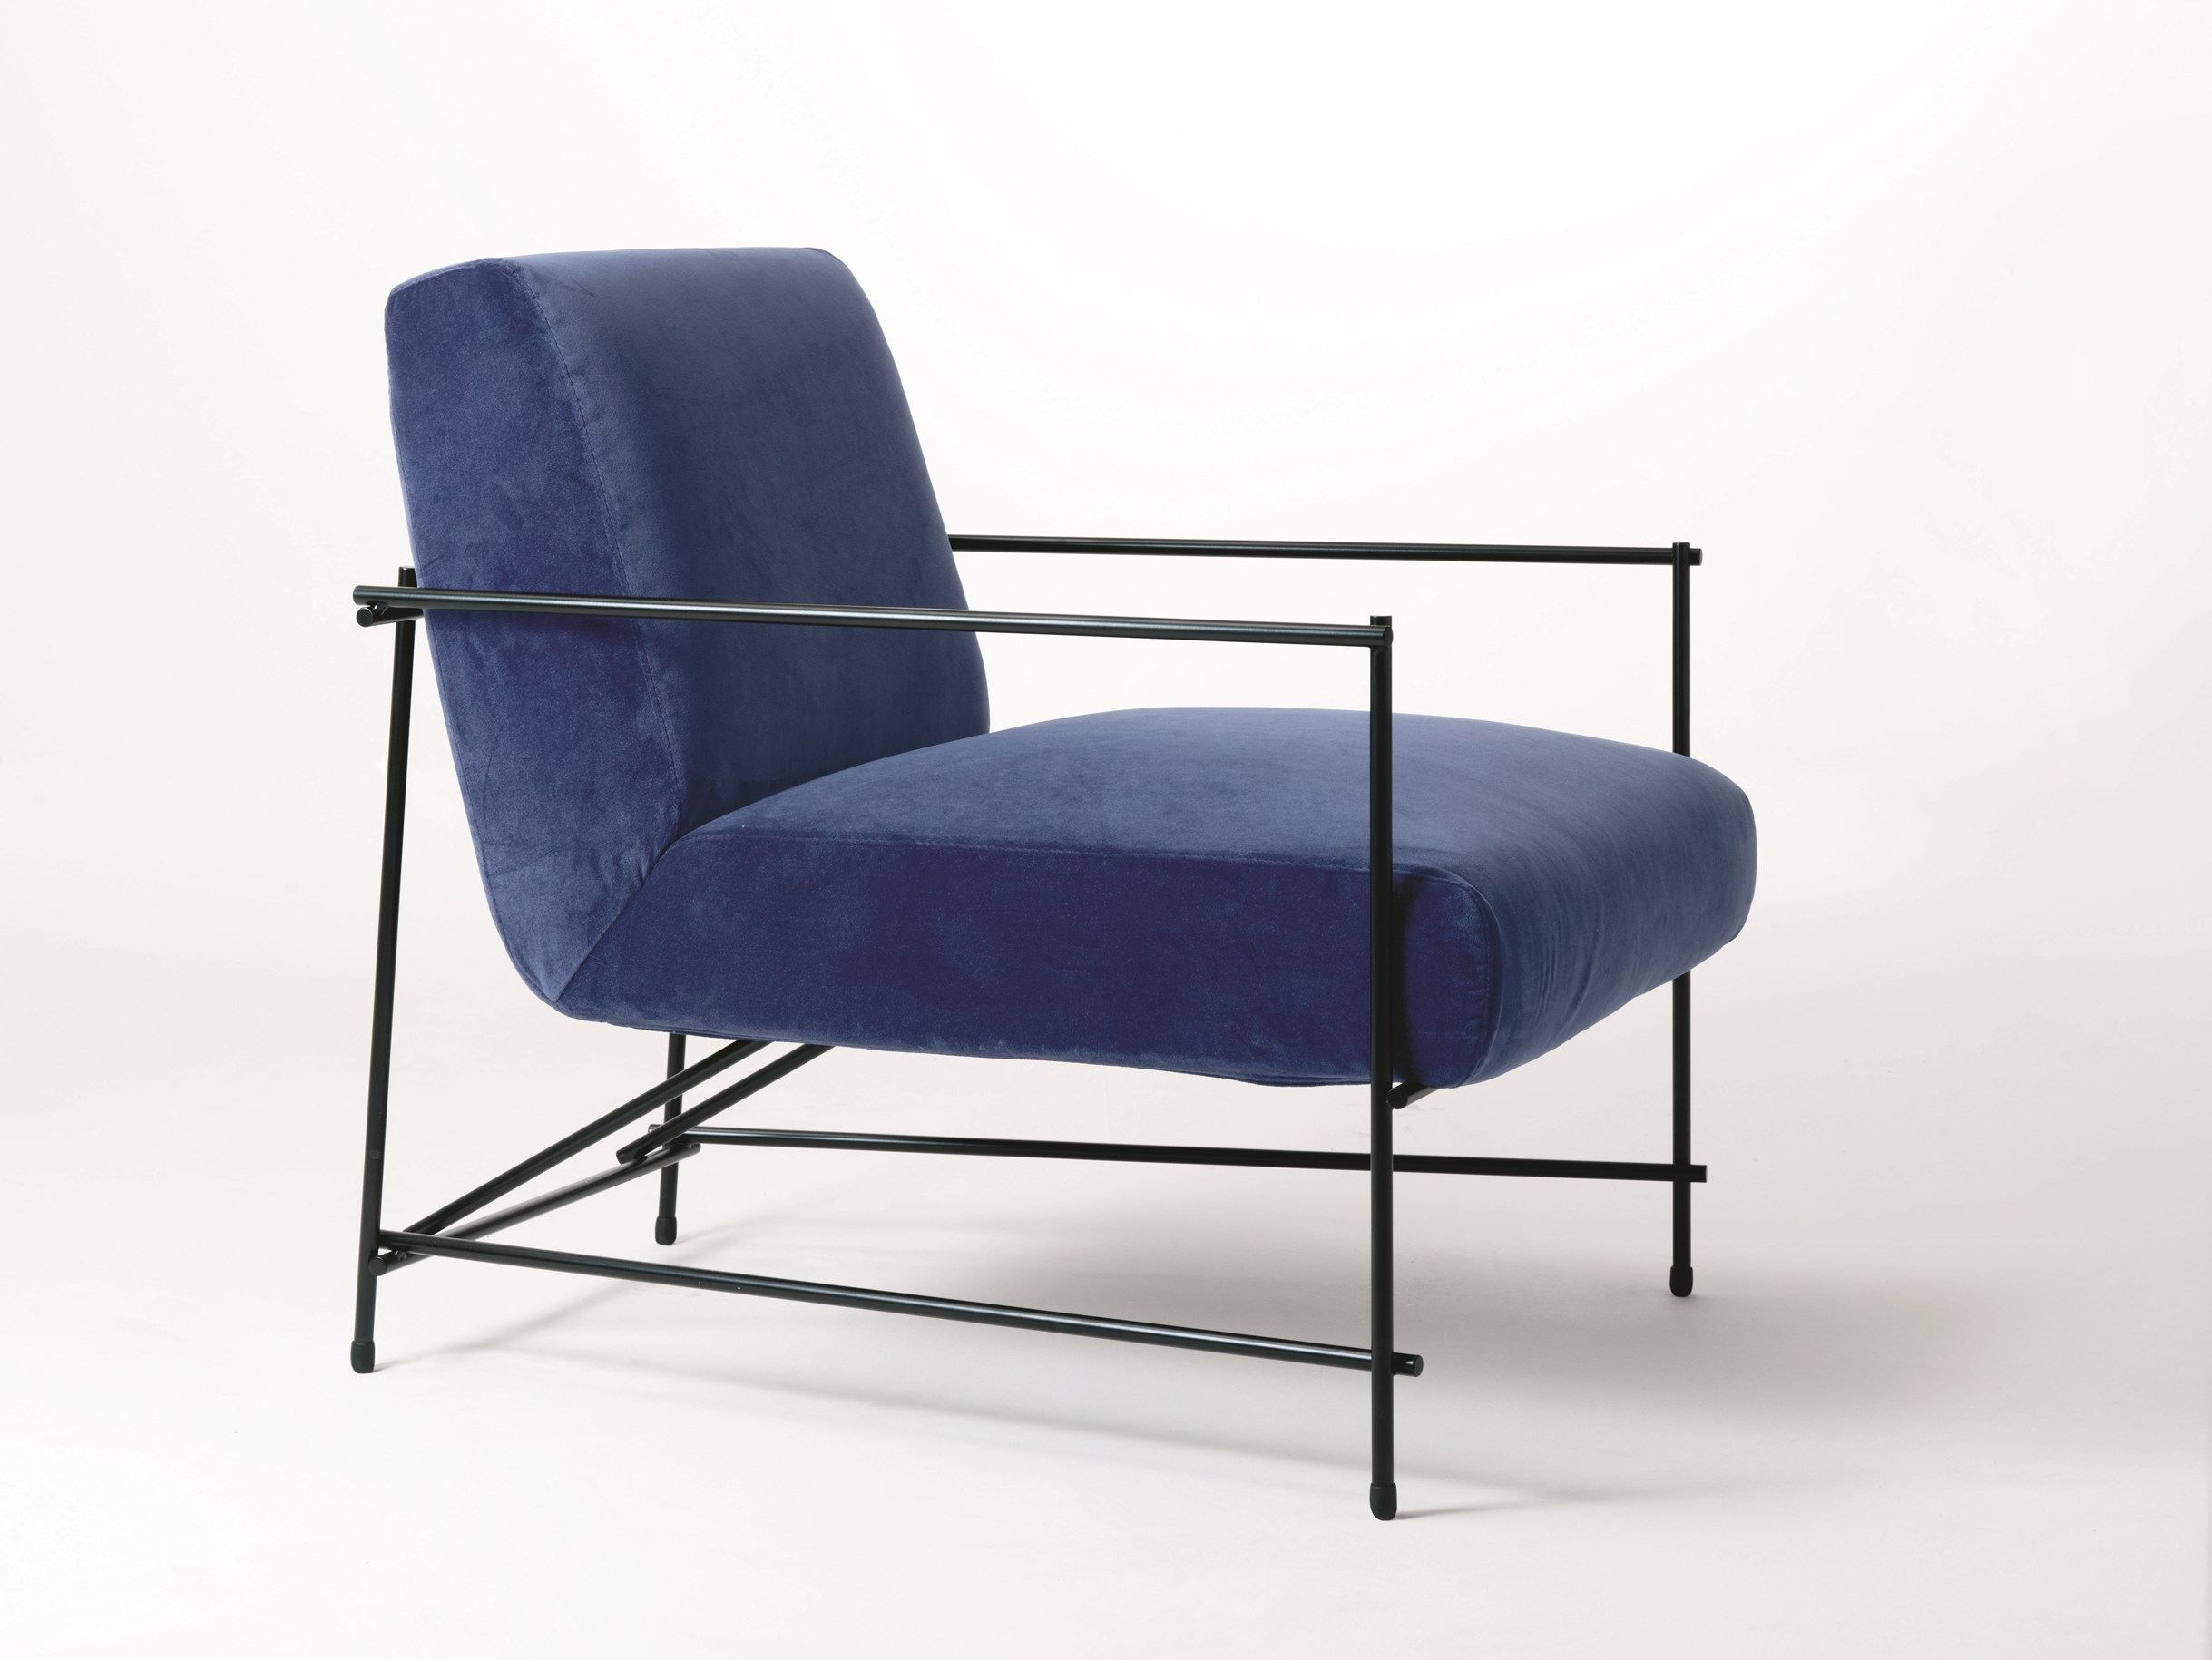 Fabric Armchair With Armrests KYO By Ditre Italia Design Stefano Spessotto,  Lorella Agnoletto